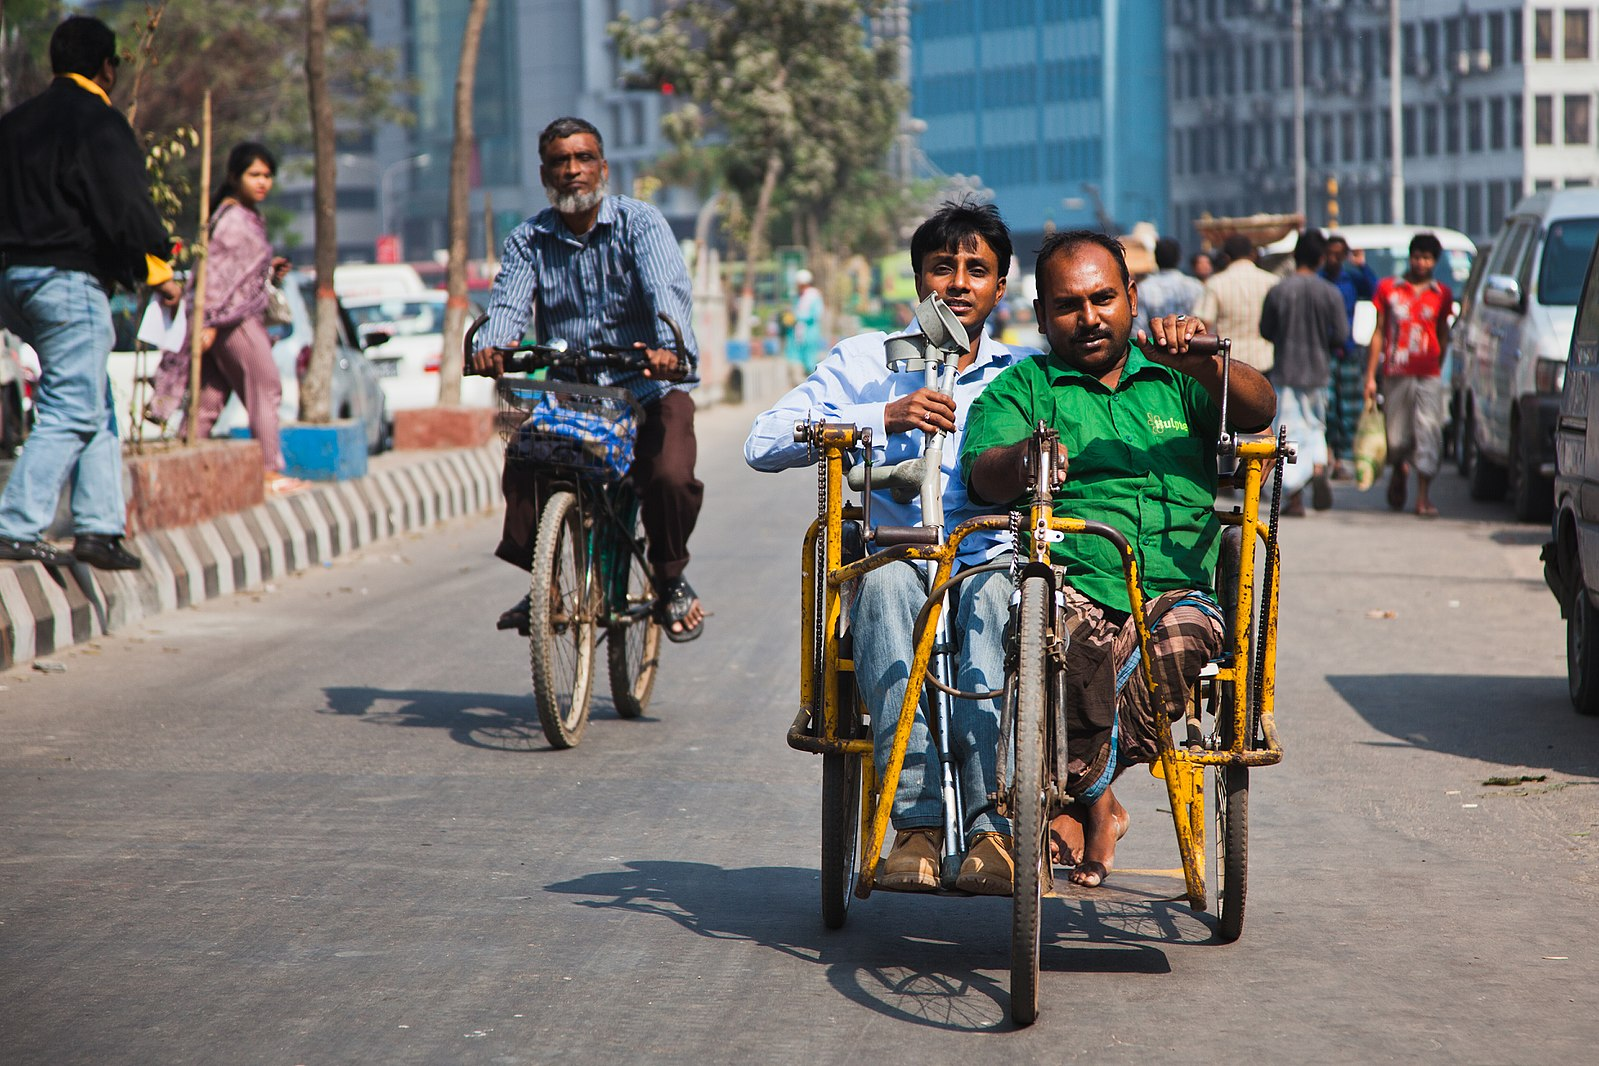 Two person with disability riding a tricycle